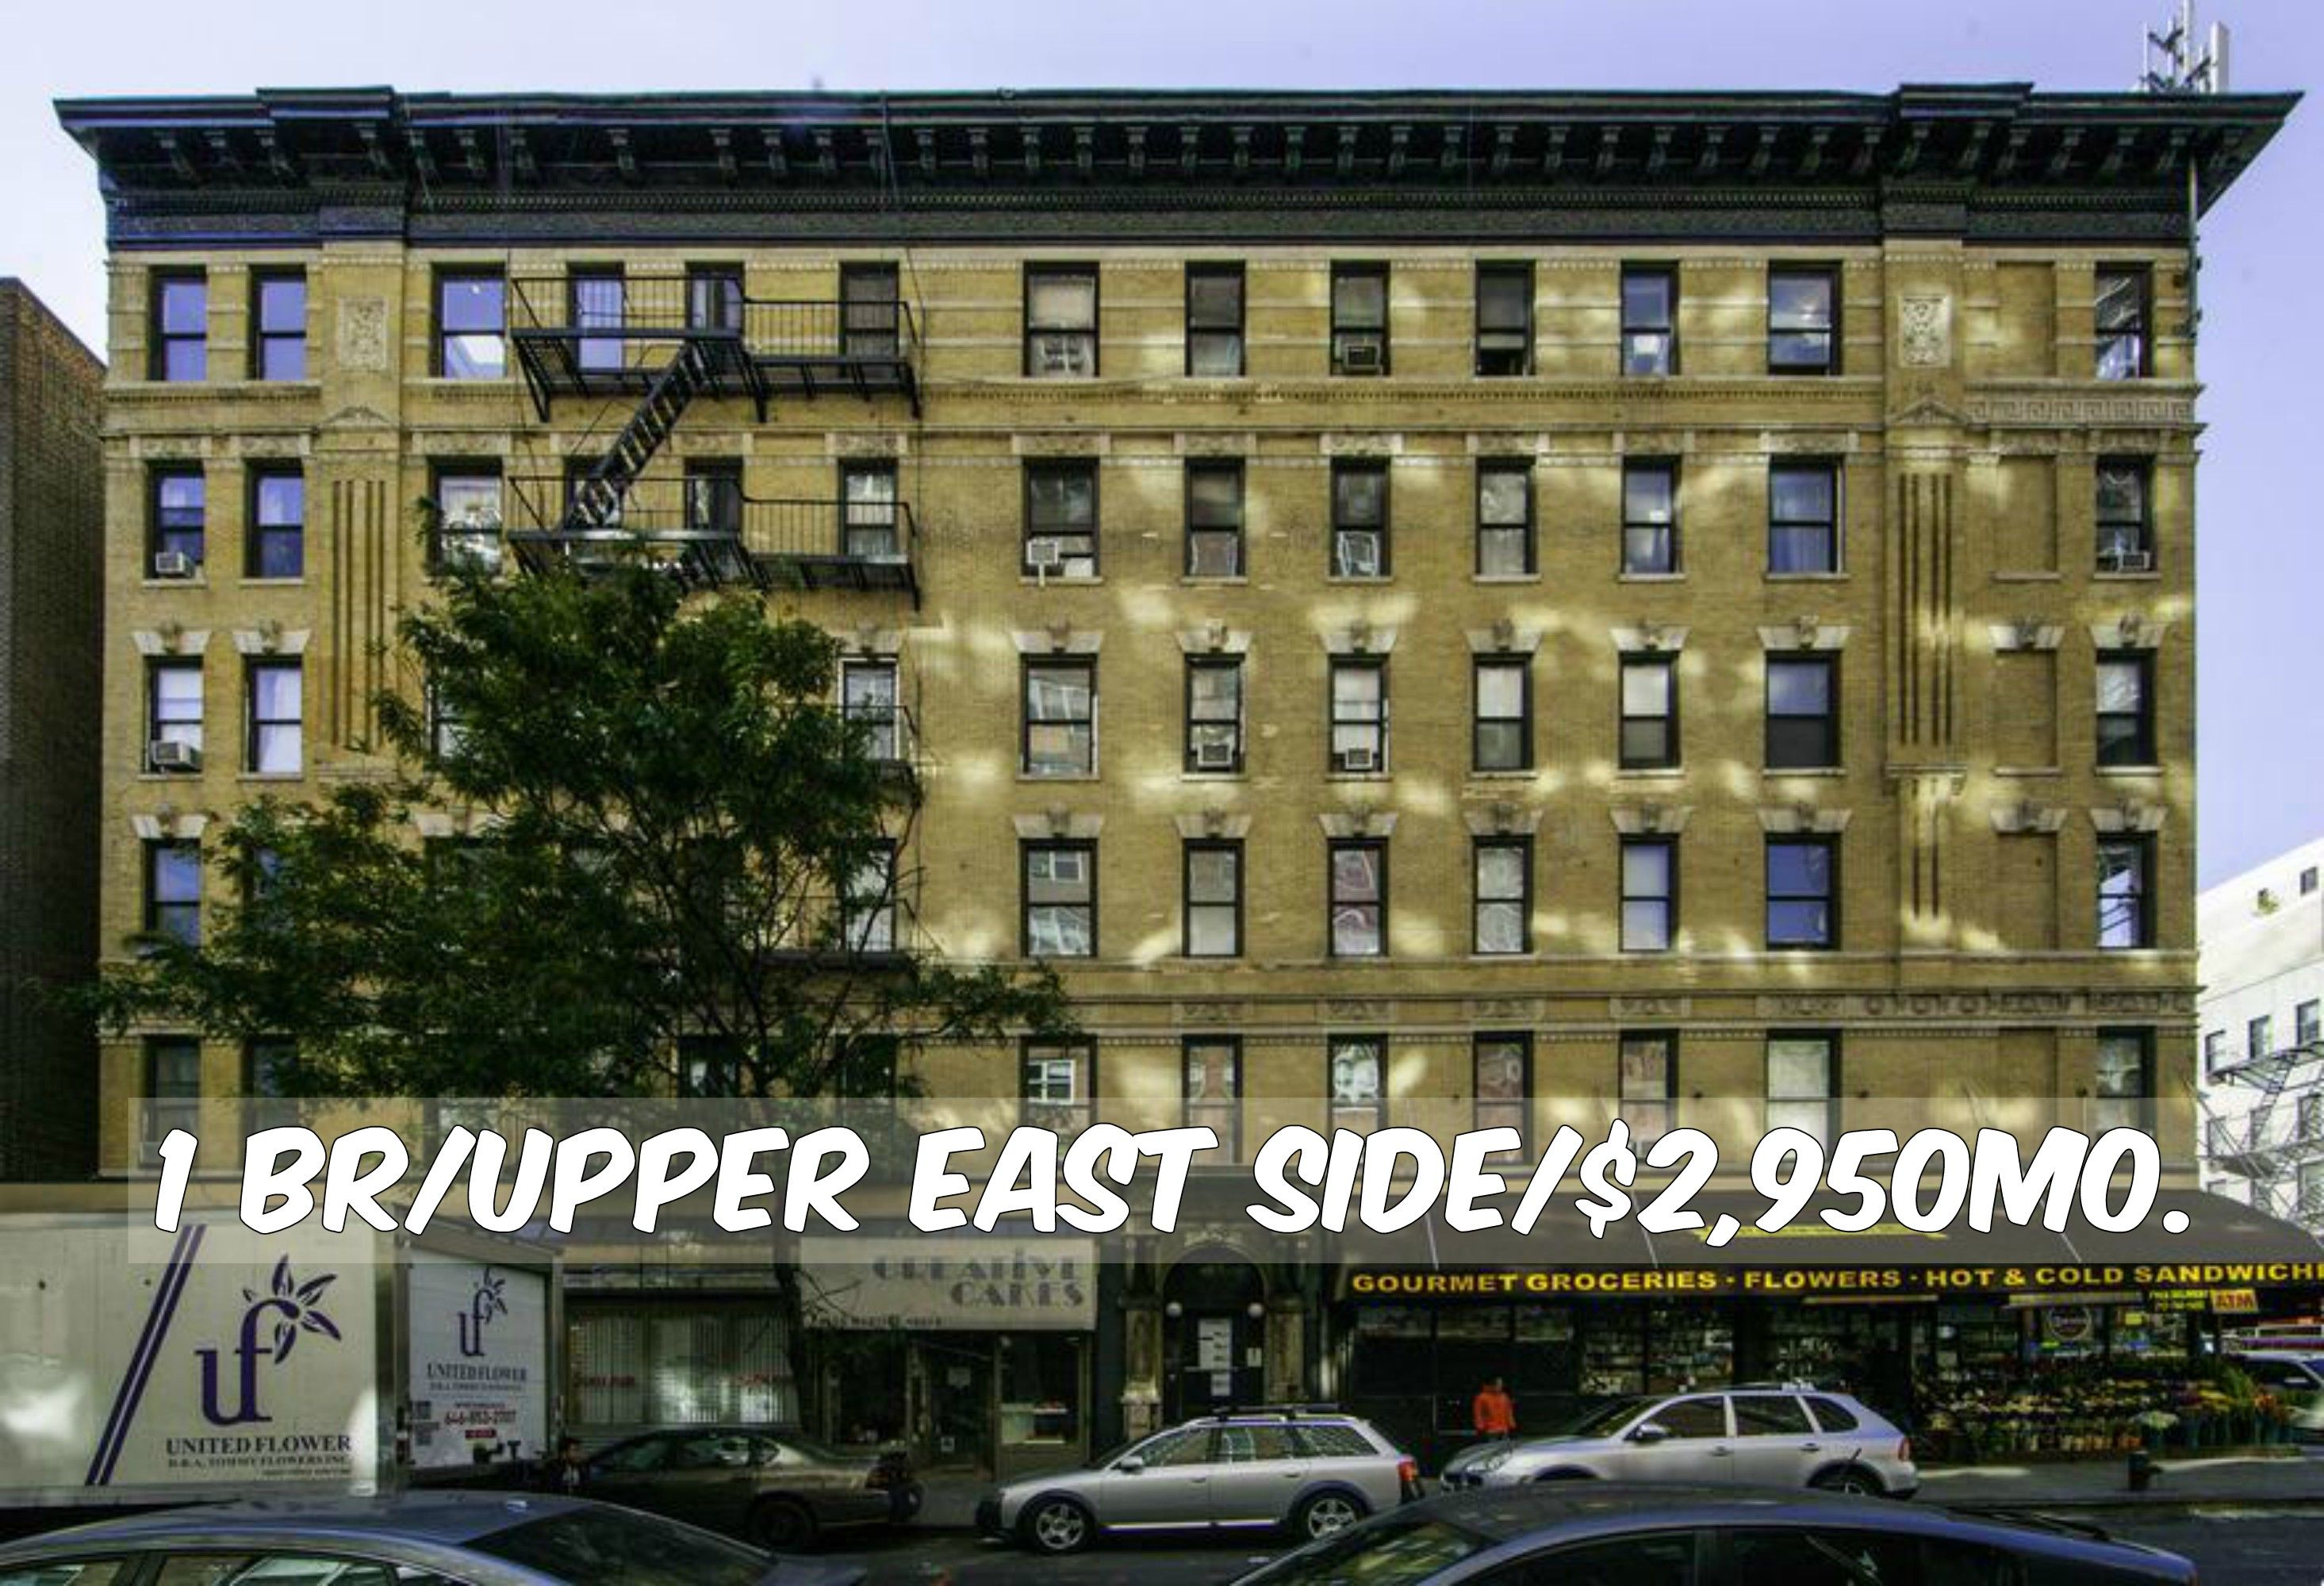 1 BR apt for rent in Upper East Side at $2,950/mo ...